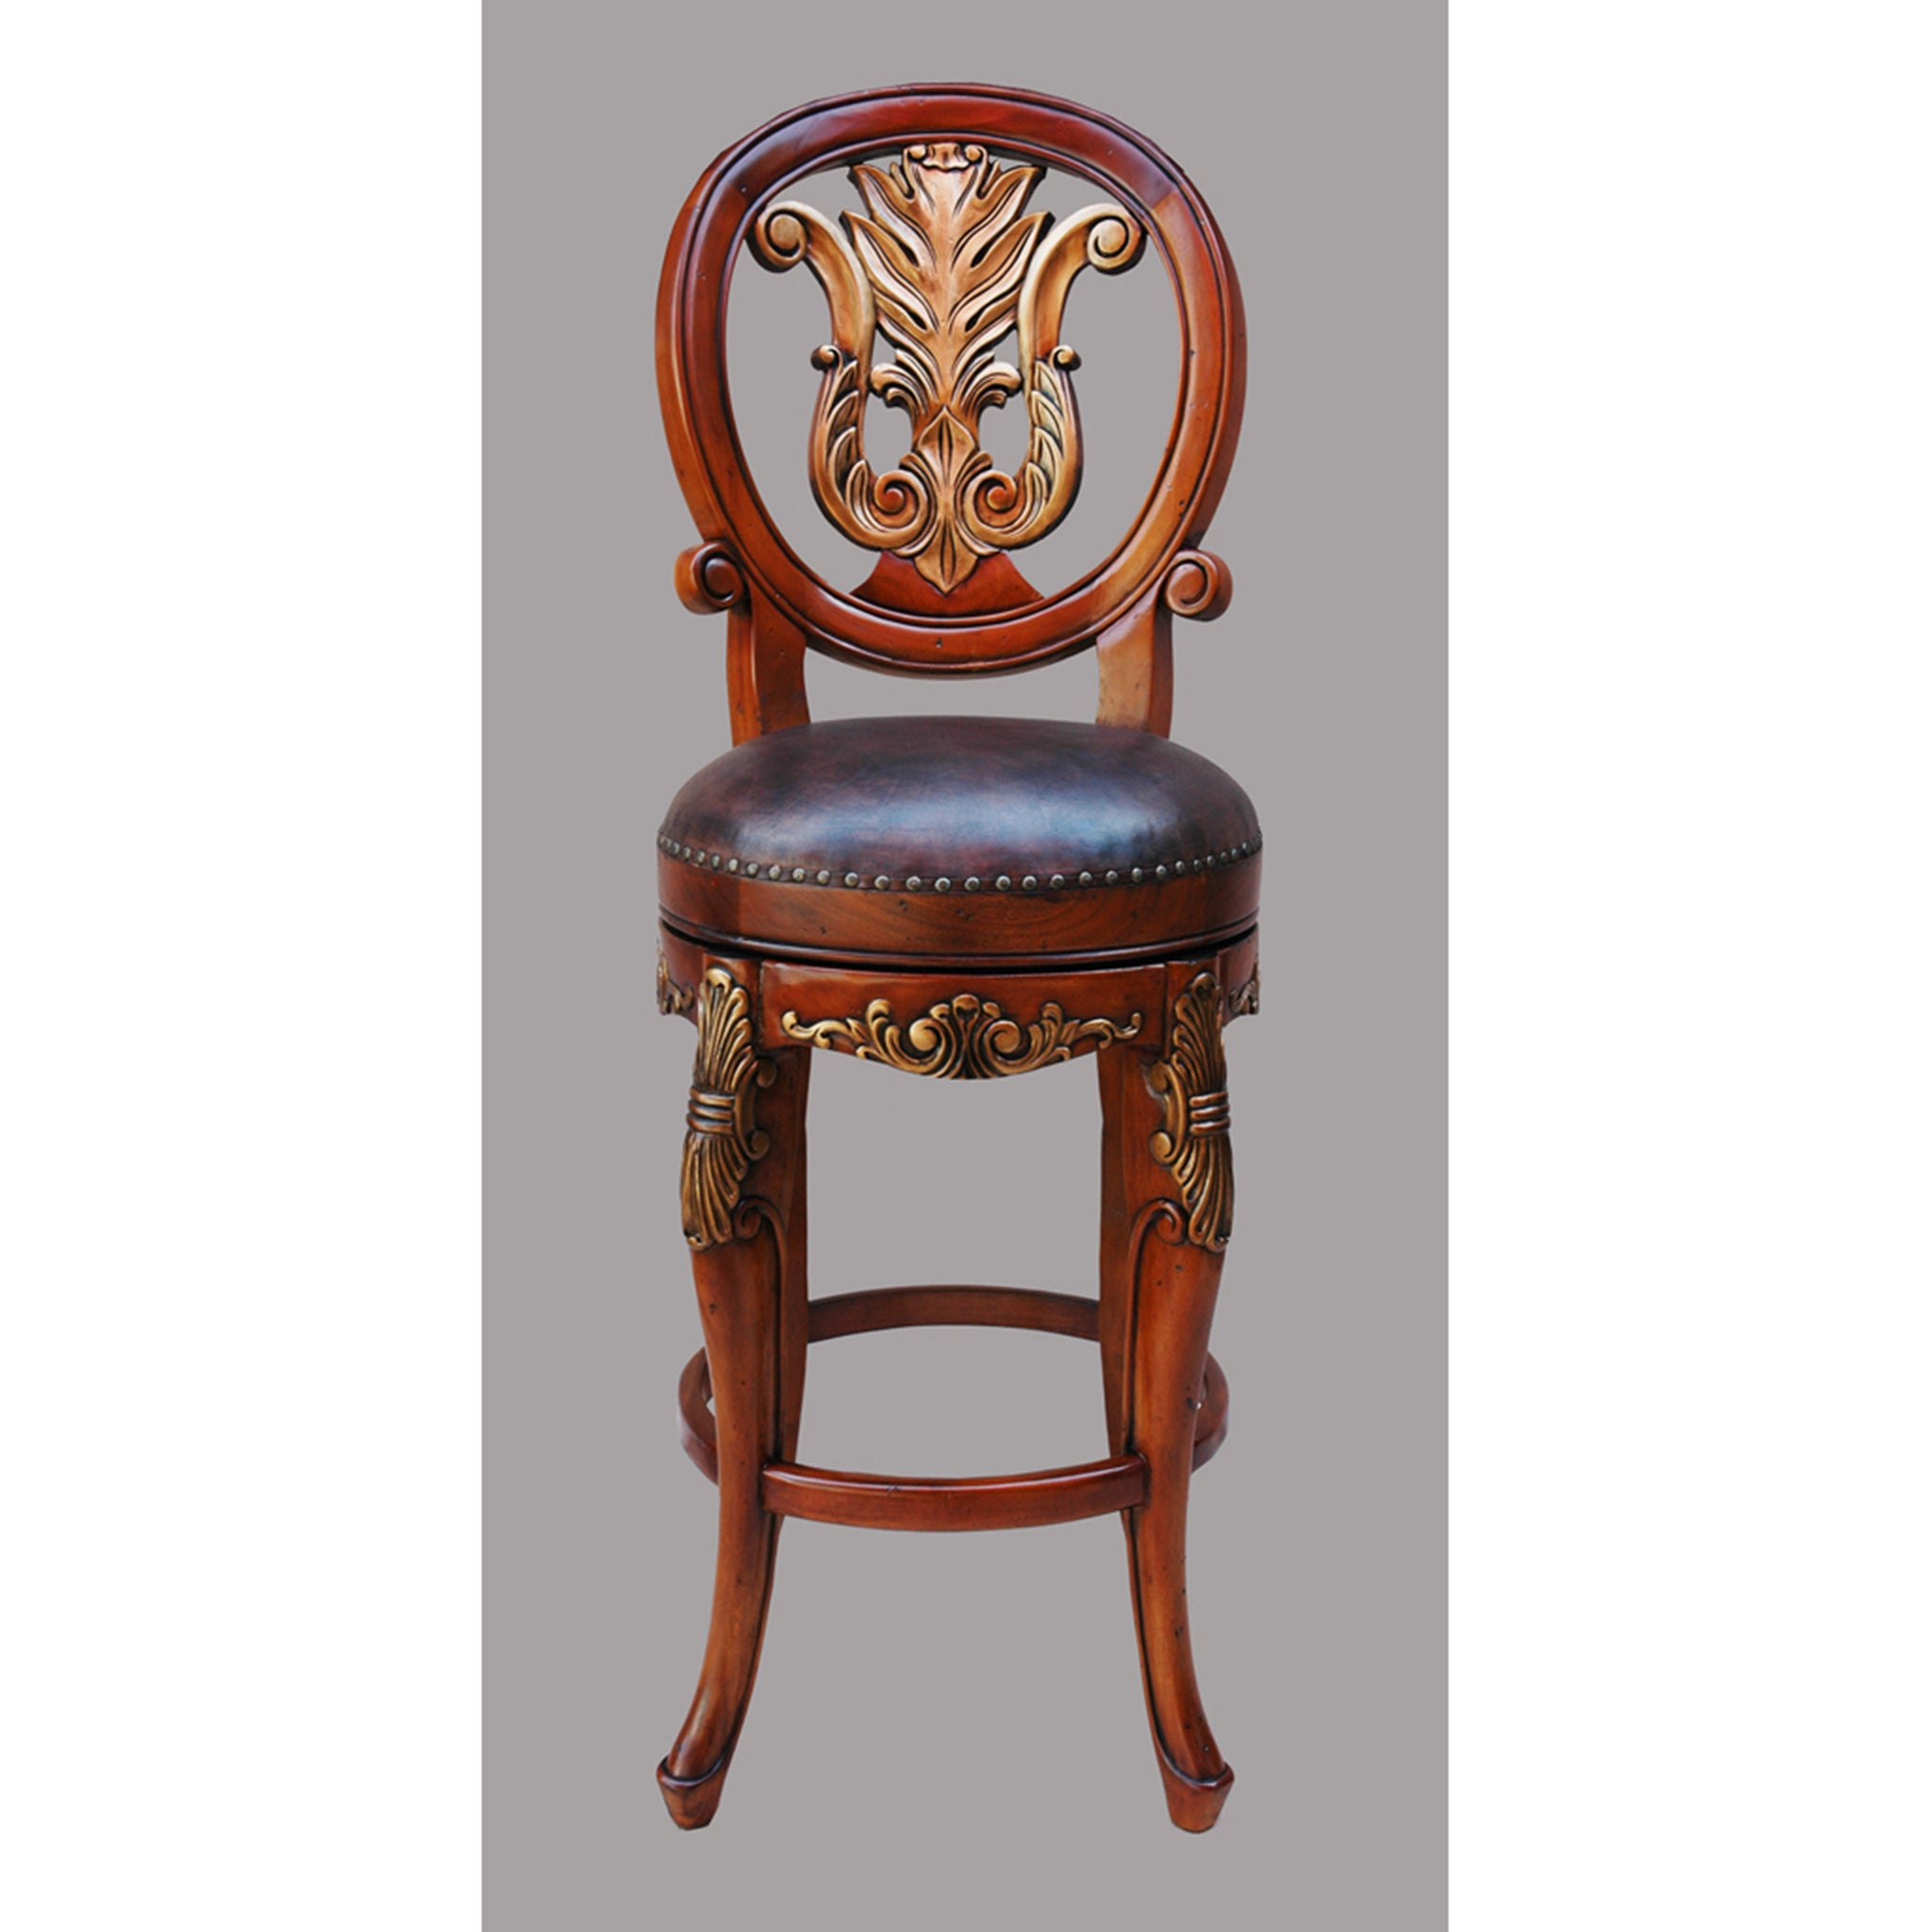 Ornate Hand Carved Barstool Set of 2 - Furniture on Main